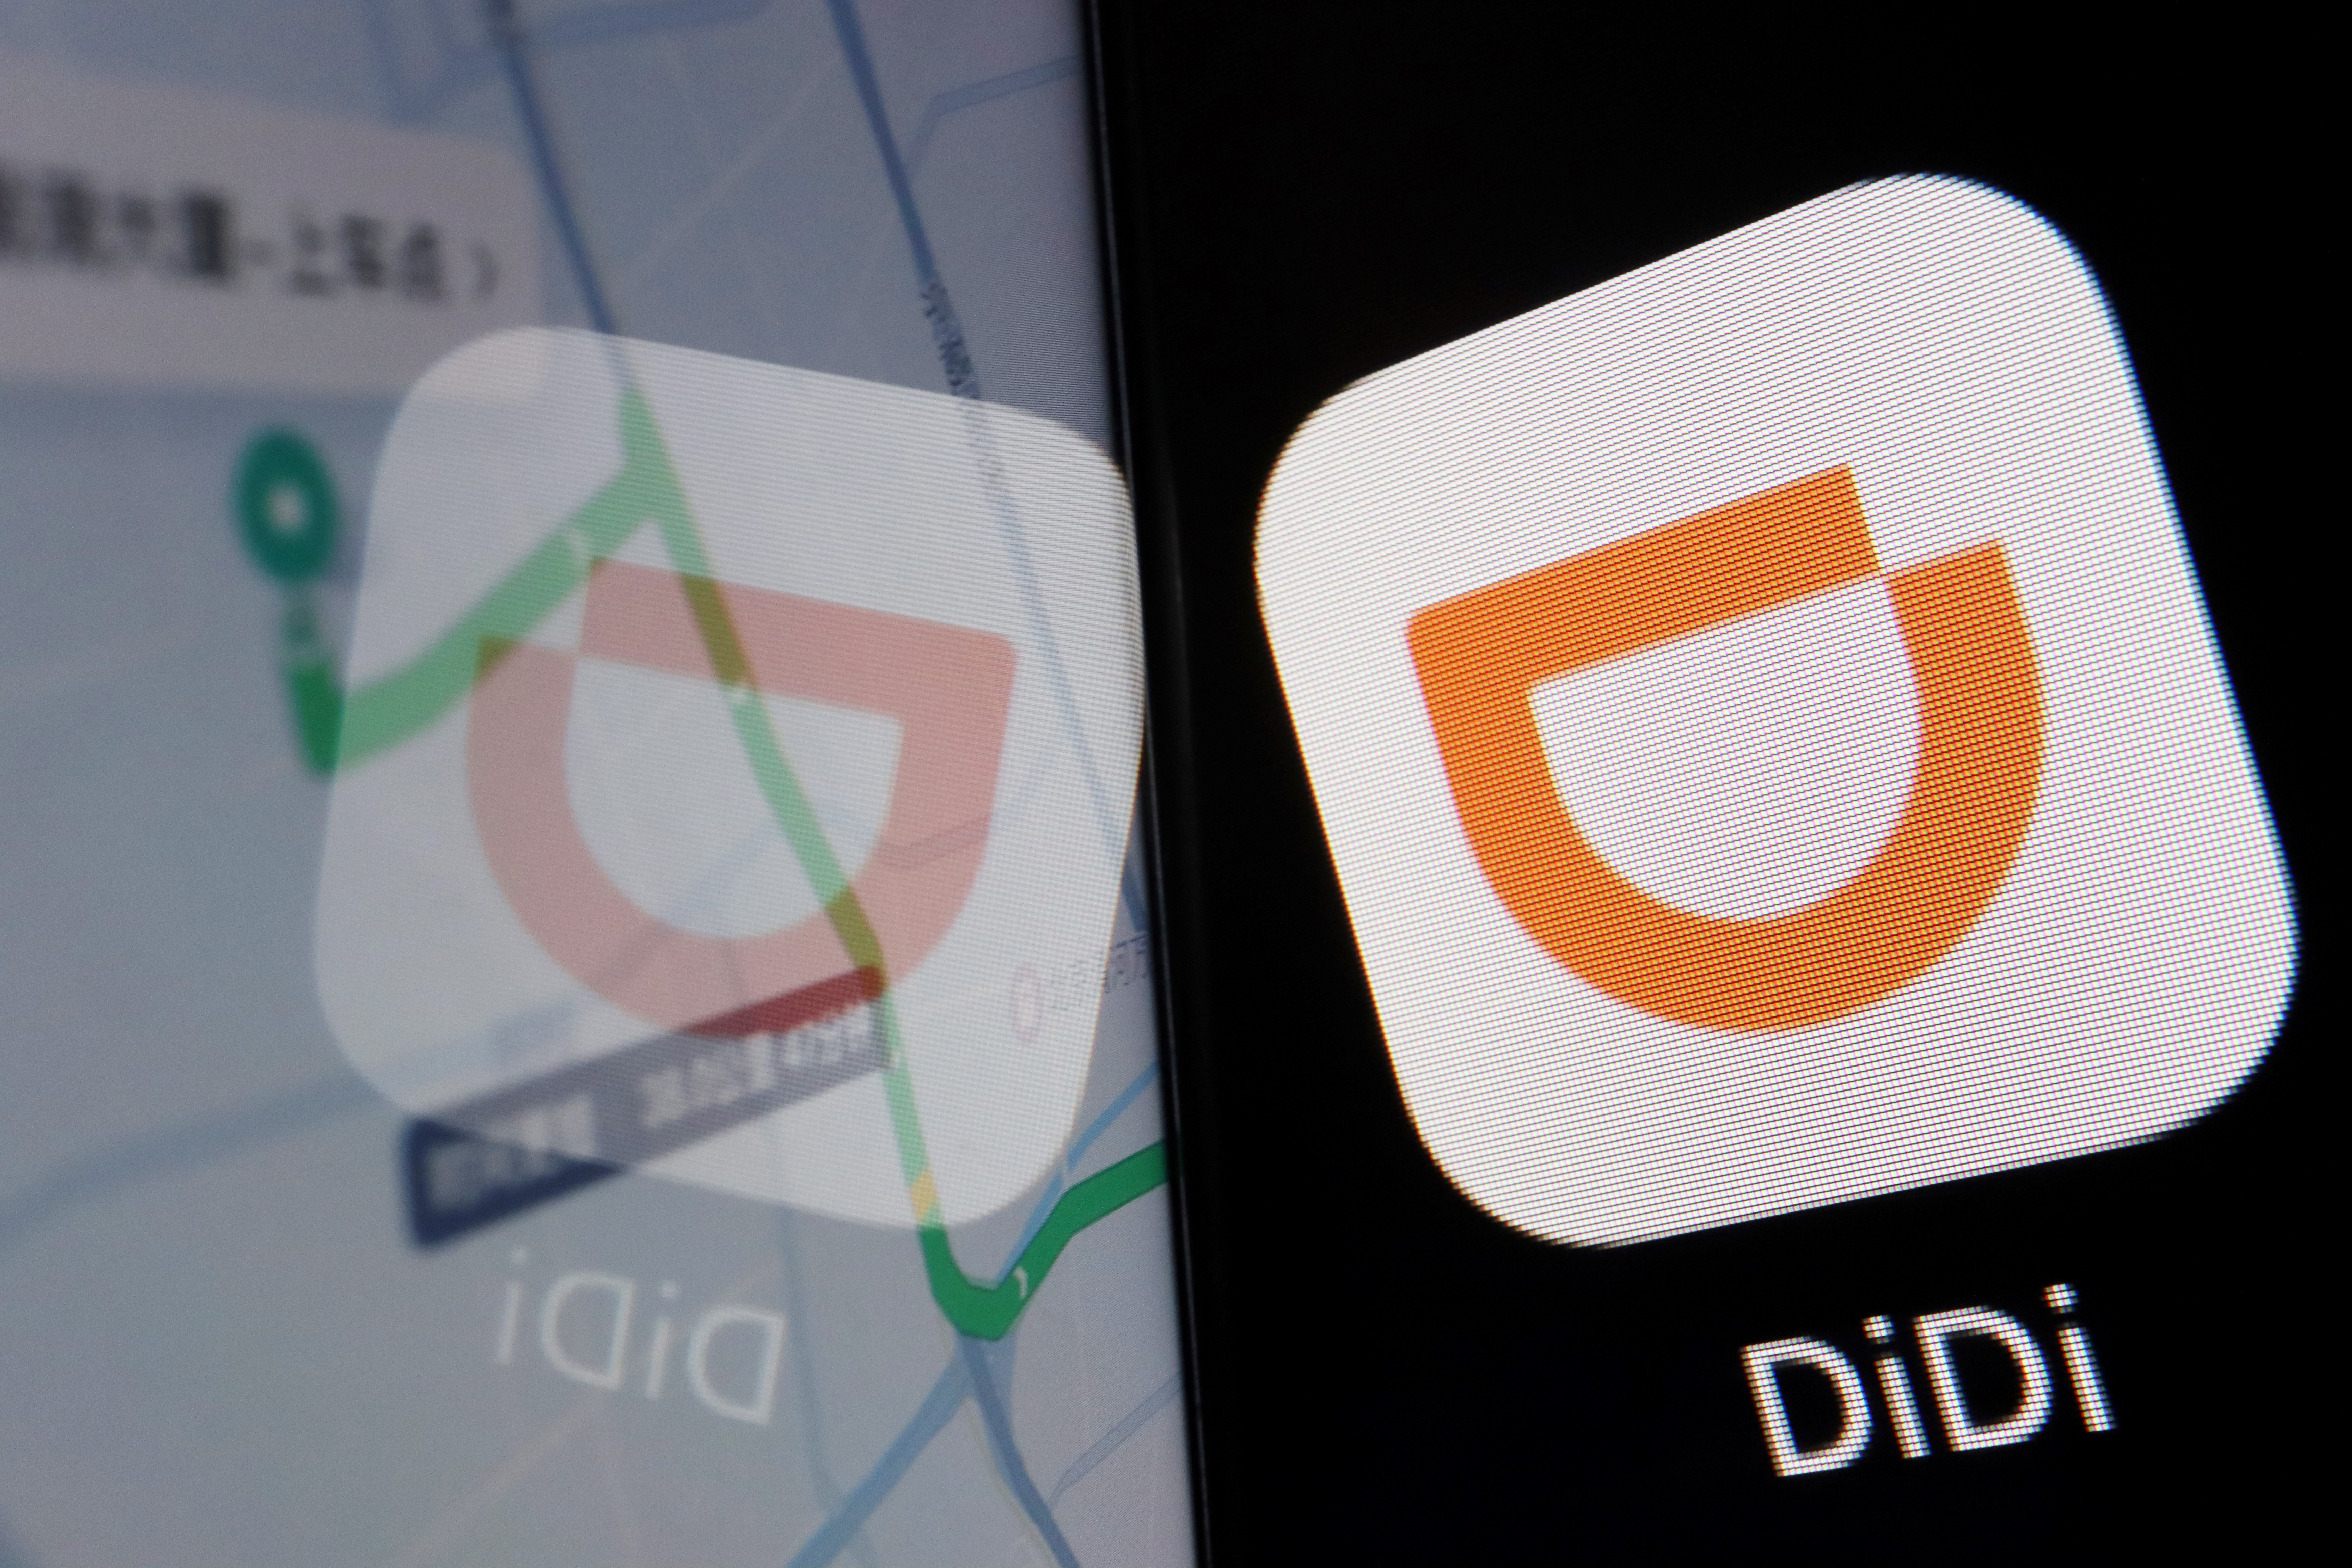 The app logo of Chinese ride-hailing giant Didi is seen reflected on its navigation map displayed on a mobile phone in this illustration picture taken July 1, 2021. REUTERS/Florence Lo/Illustration/File Photo